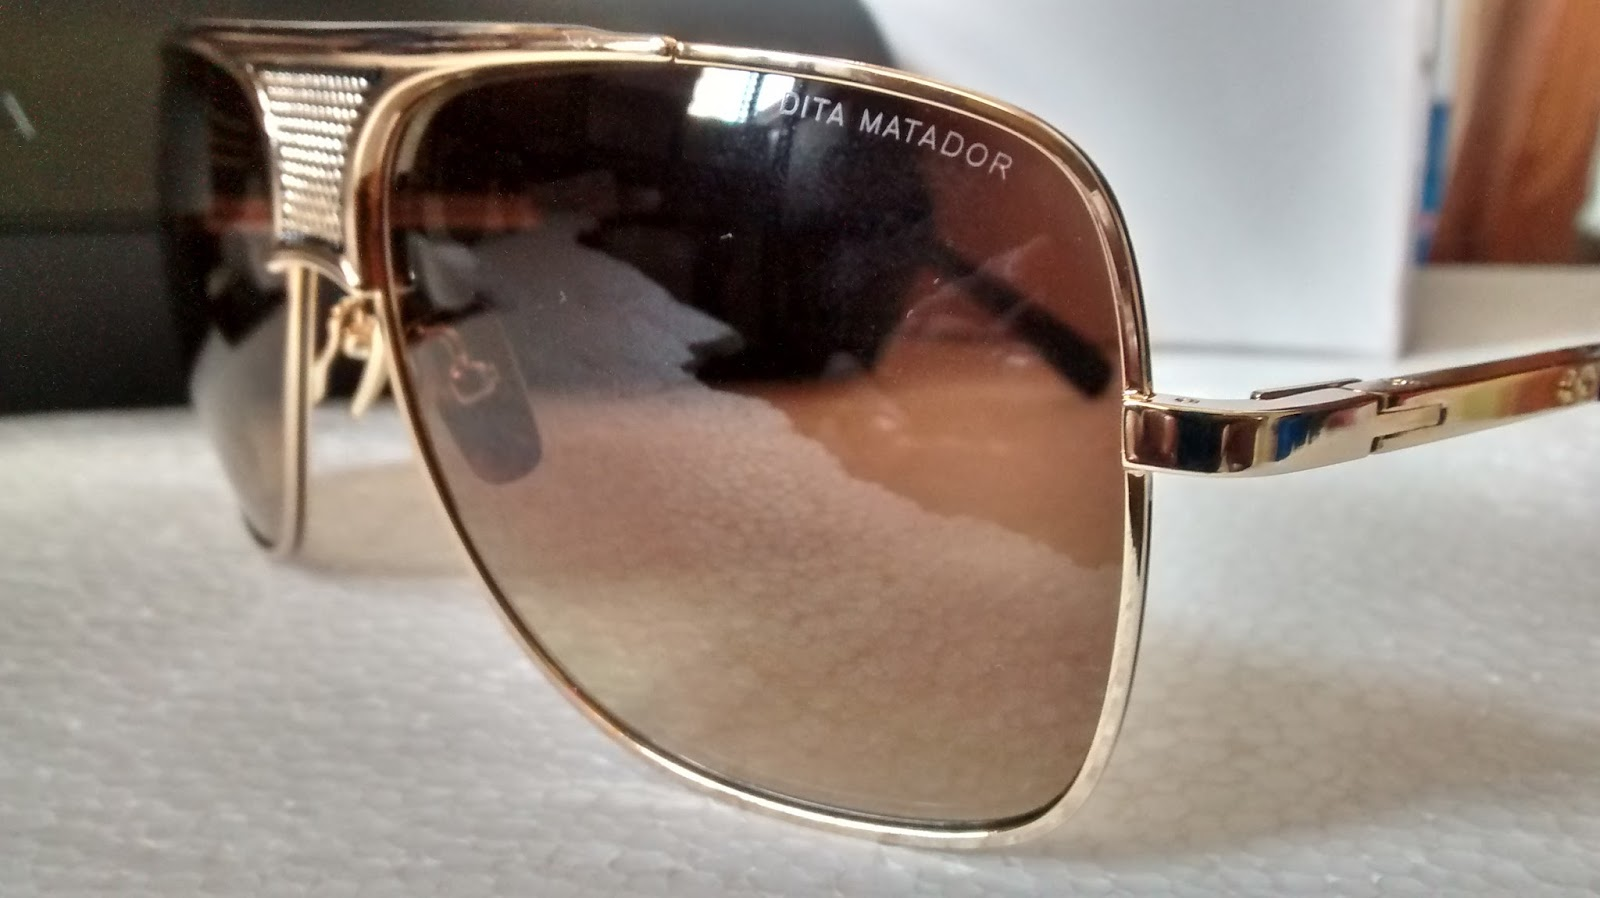 1ea8bb6480af If you want that low quality DITA sunglasses we will provide that as well.  Ask us for pics but no don t expect quality.